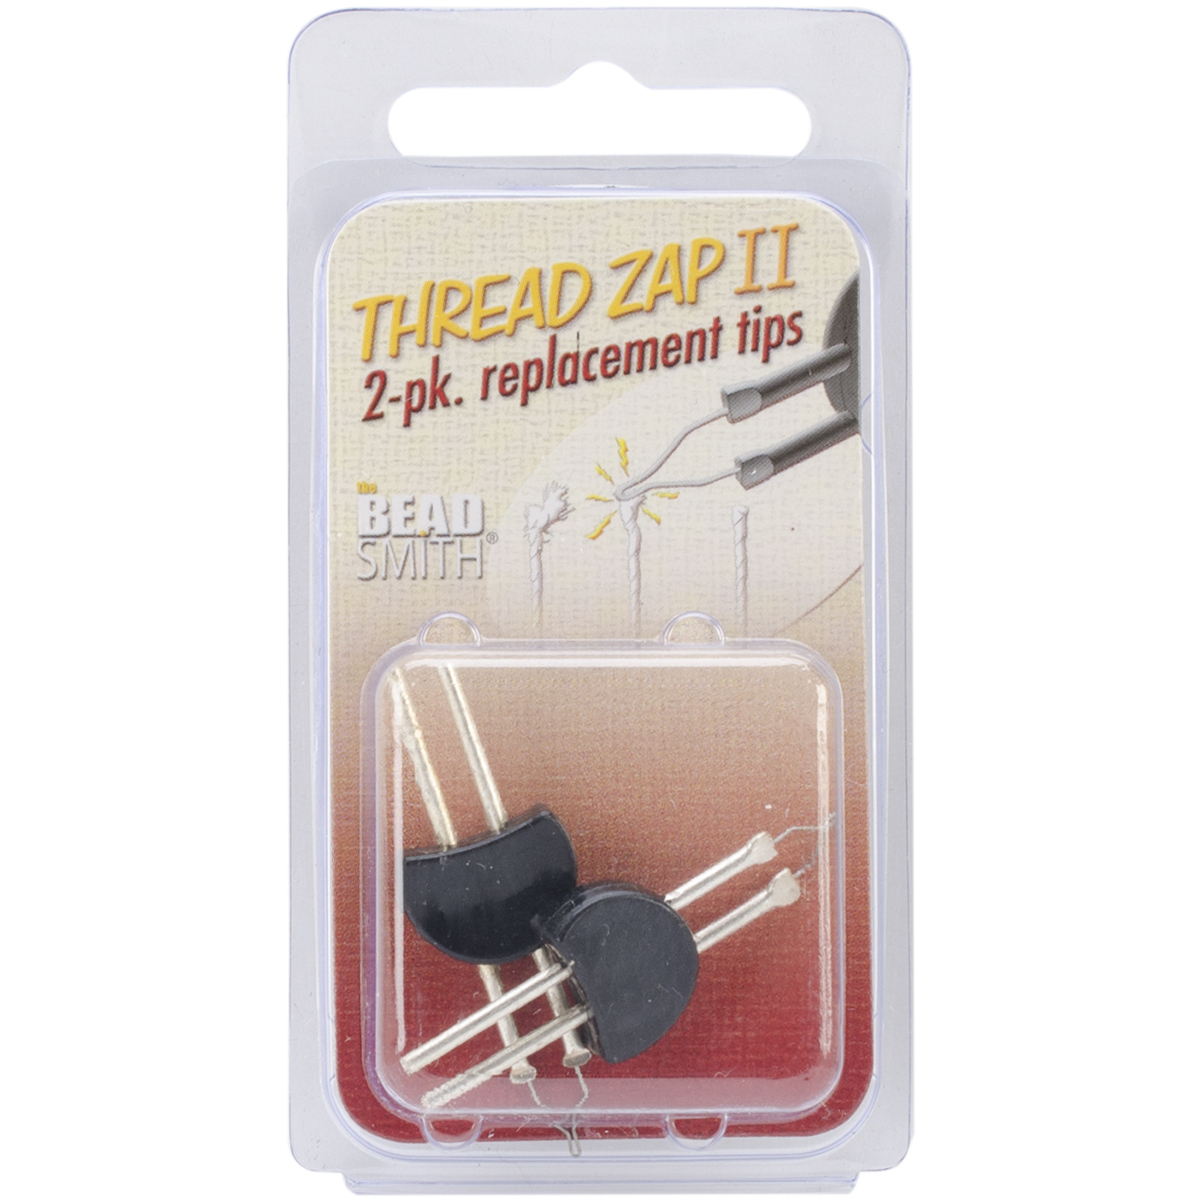 Beadsmith Thread Zap II Replacement Tip For TZ1300